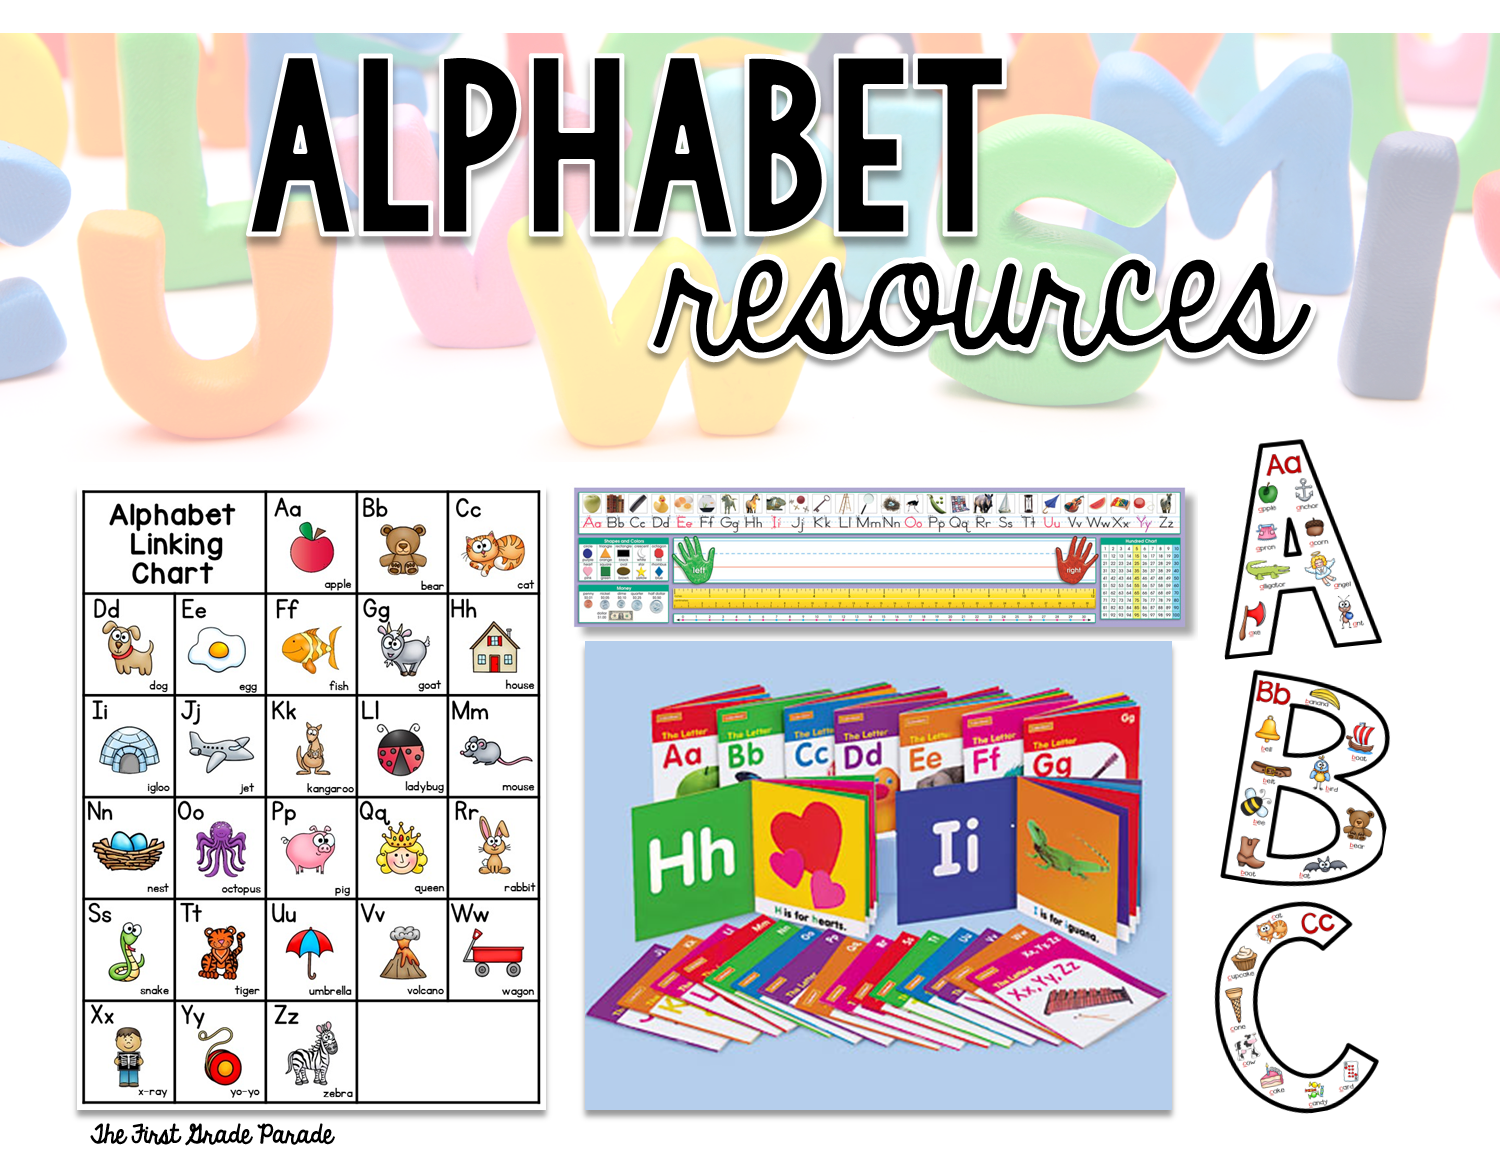 Worksheet Make A Mnemonic With These Letters the first grade parade all about alphabet i love that they have picture cues for each letter keep a set of books in my station